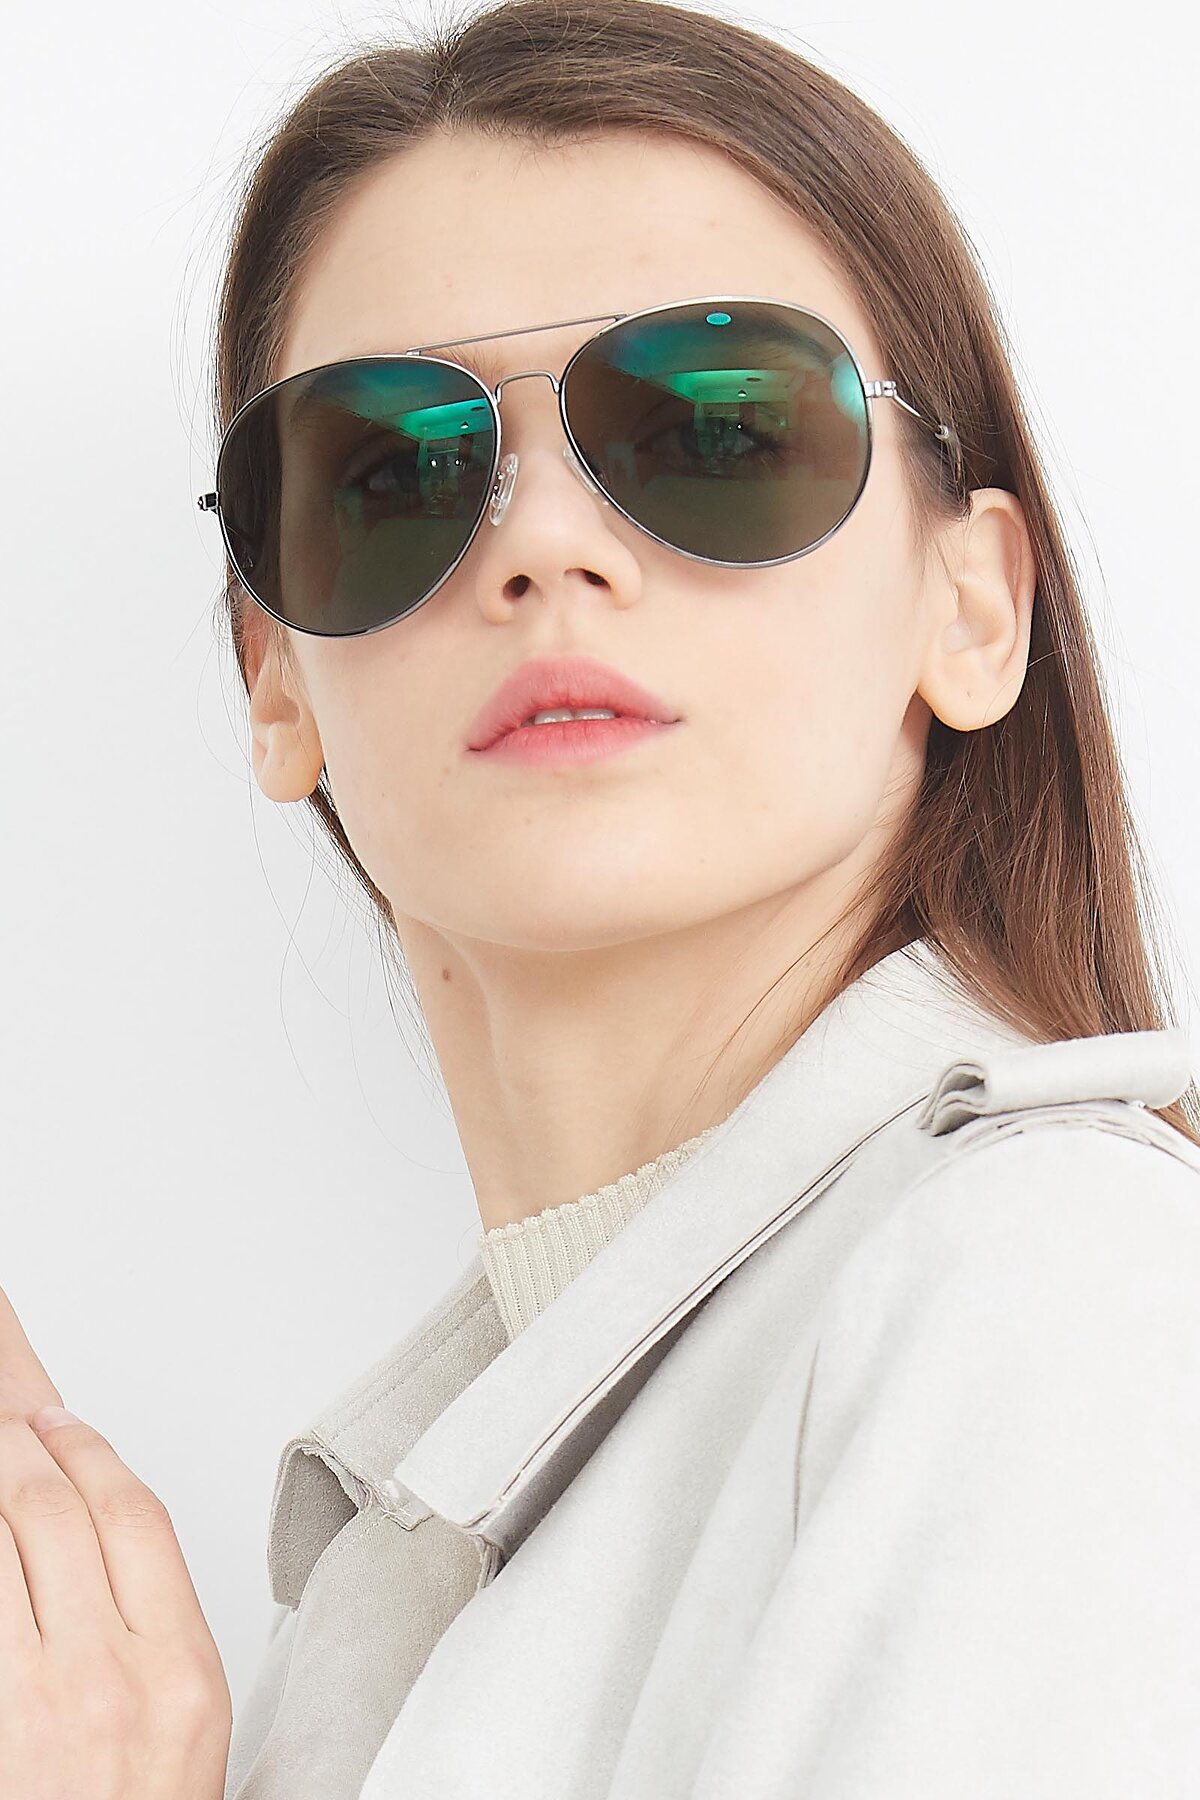 Women's lifestyle photography (portrait-1) of SSR179 in Gunmetal with Green Tinted Lenses